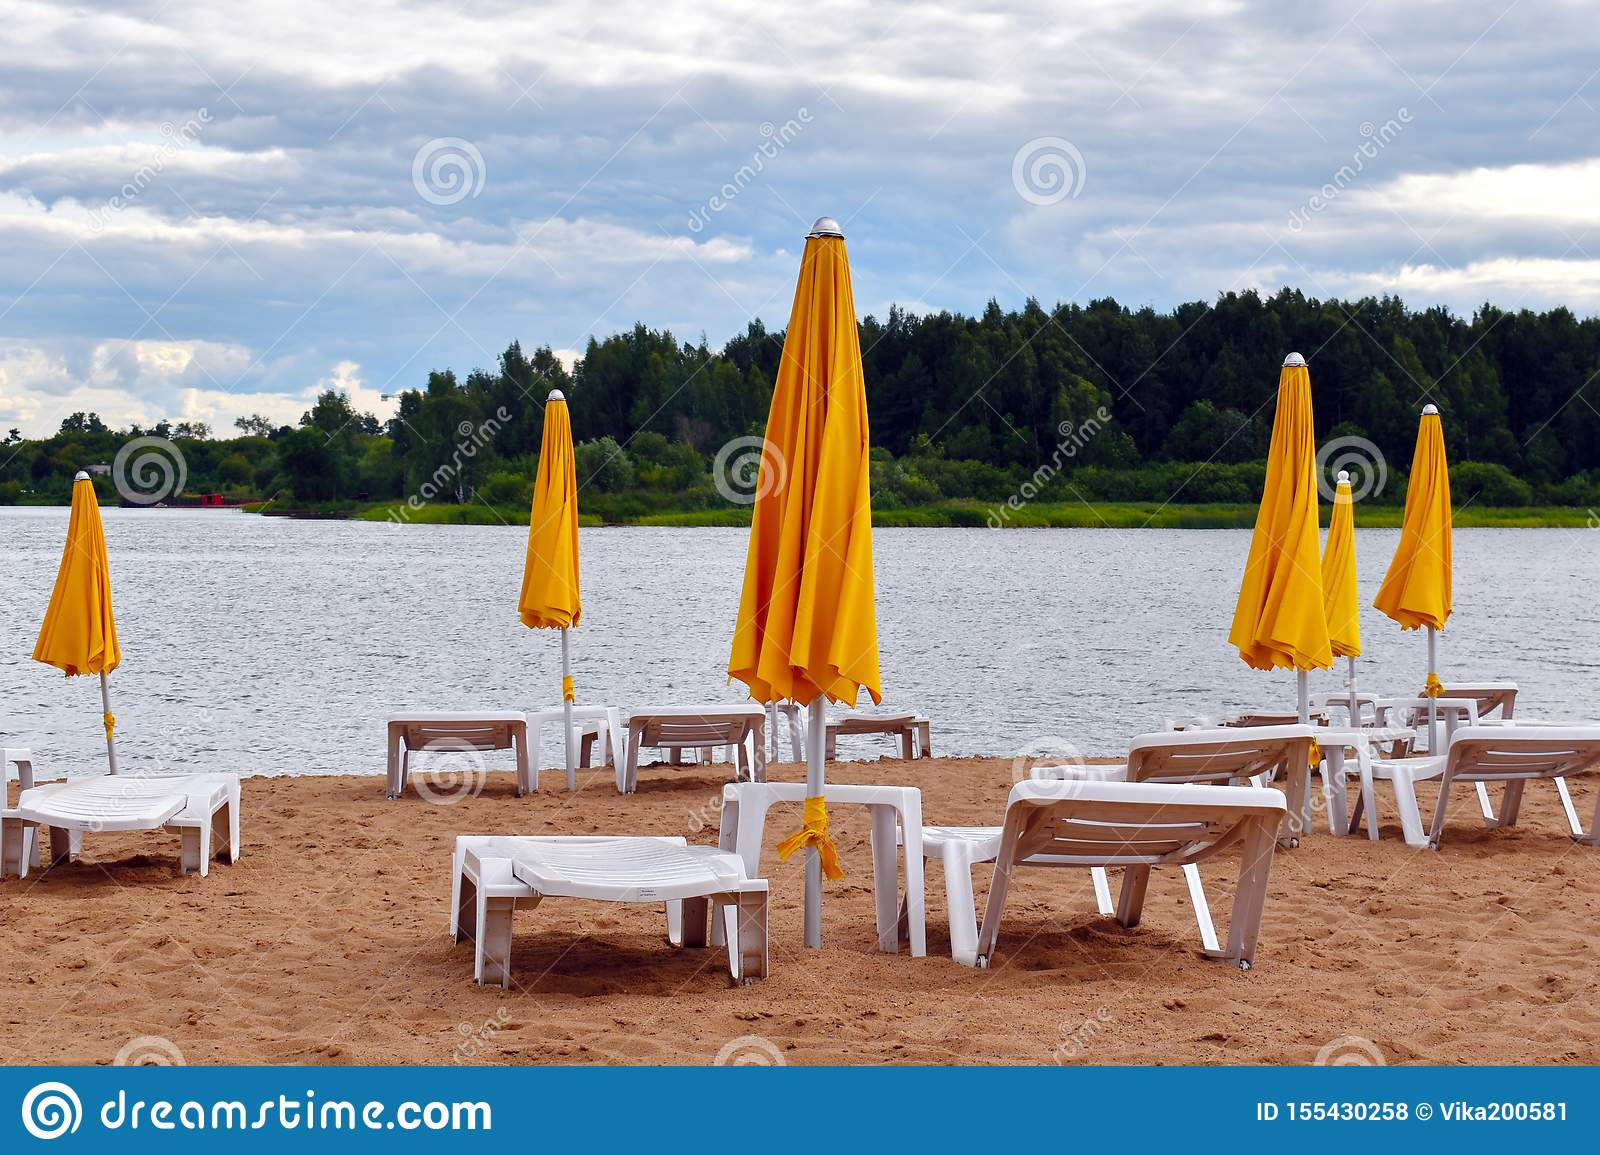 Sun beds on the beach with yellow umbrellas in summer